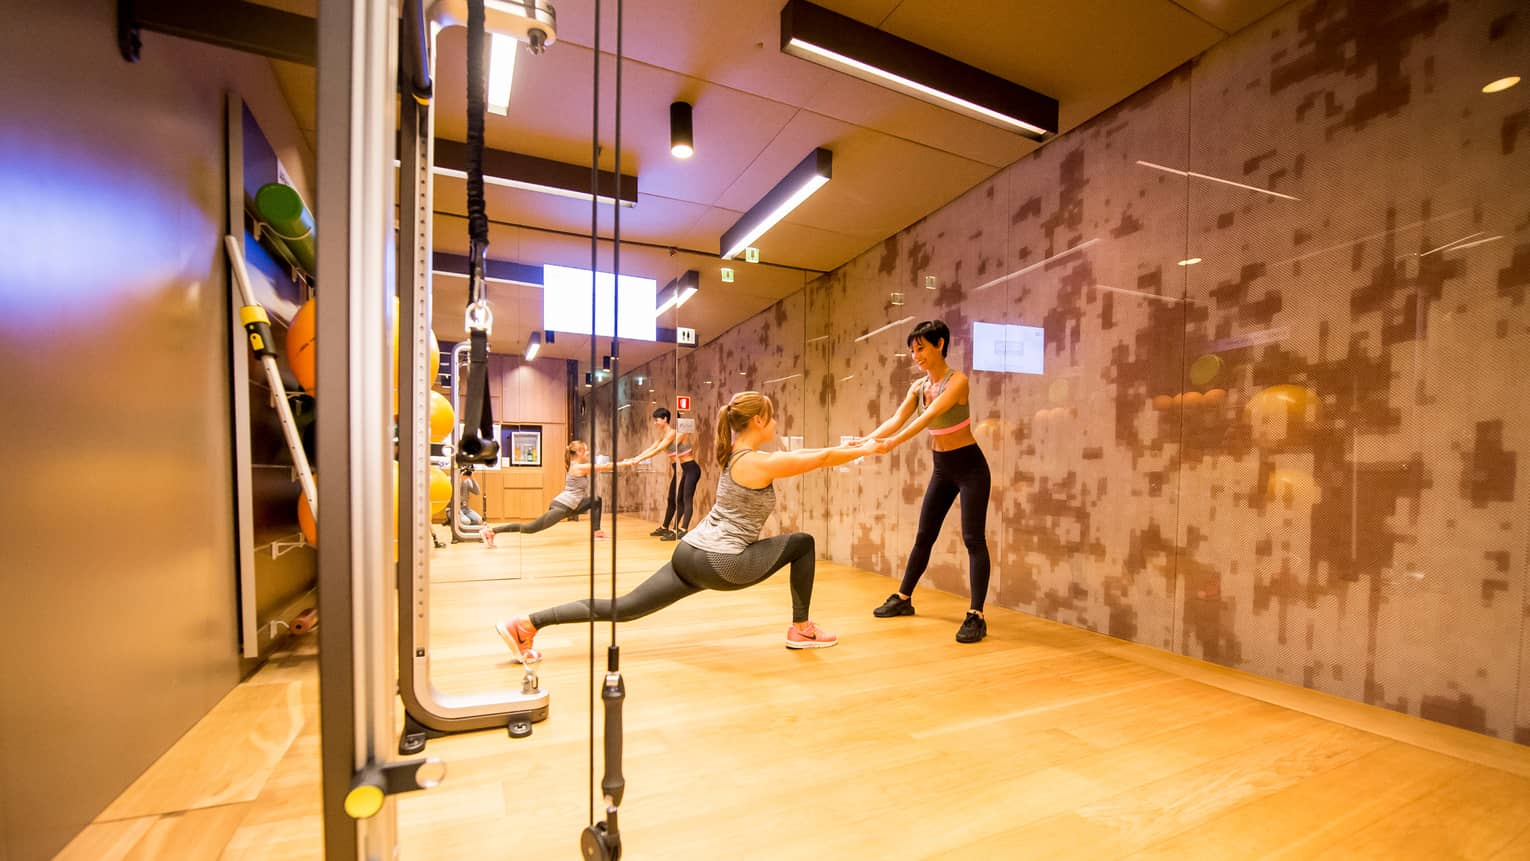 Personal trainer helps woman balance in a lunge pose in Fitness Centre